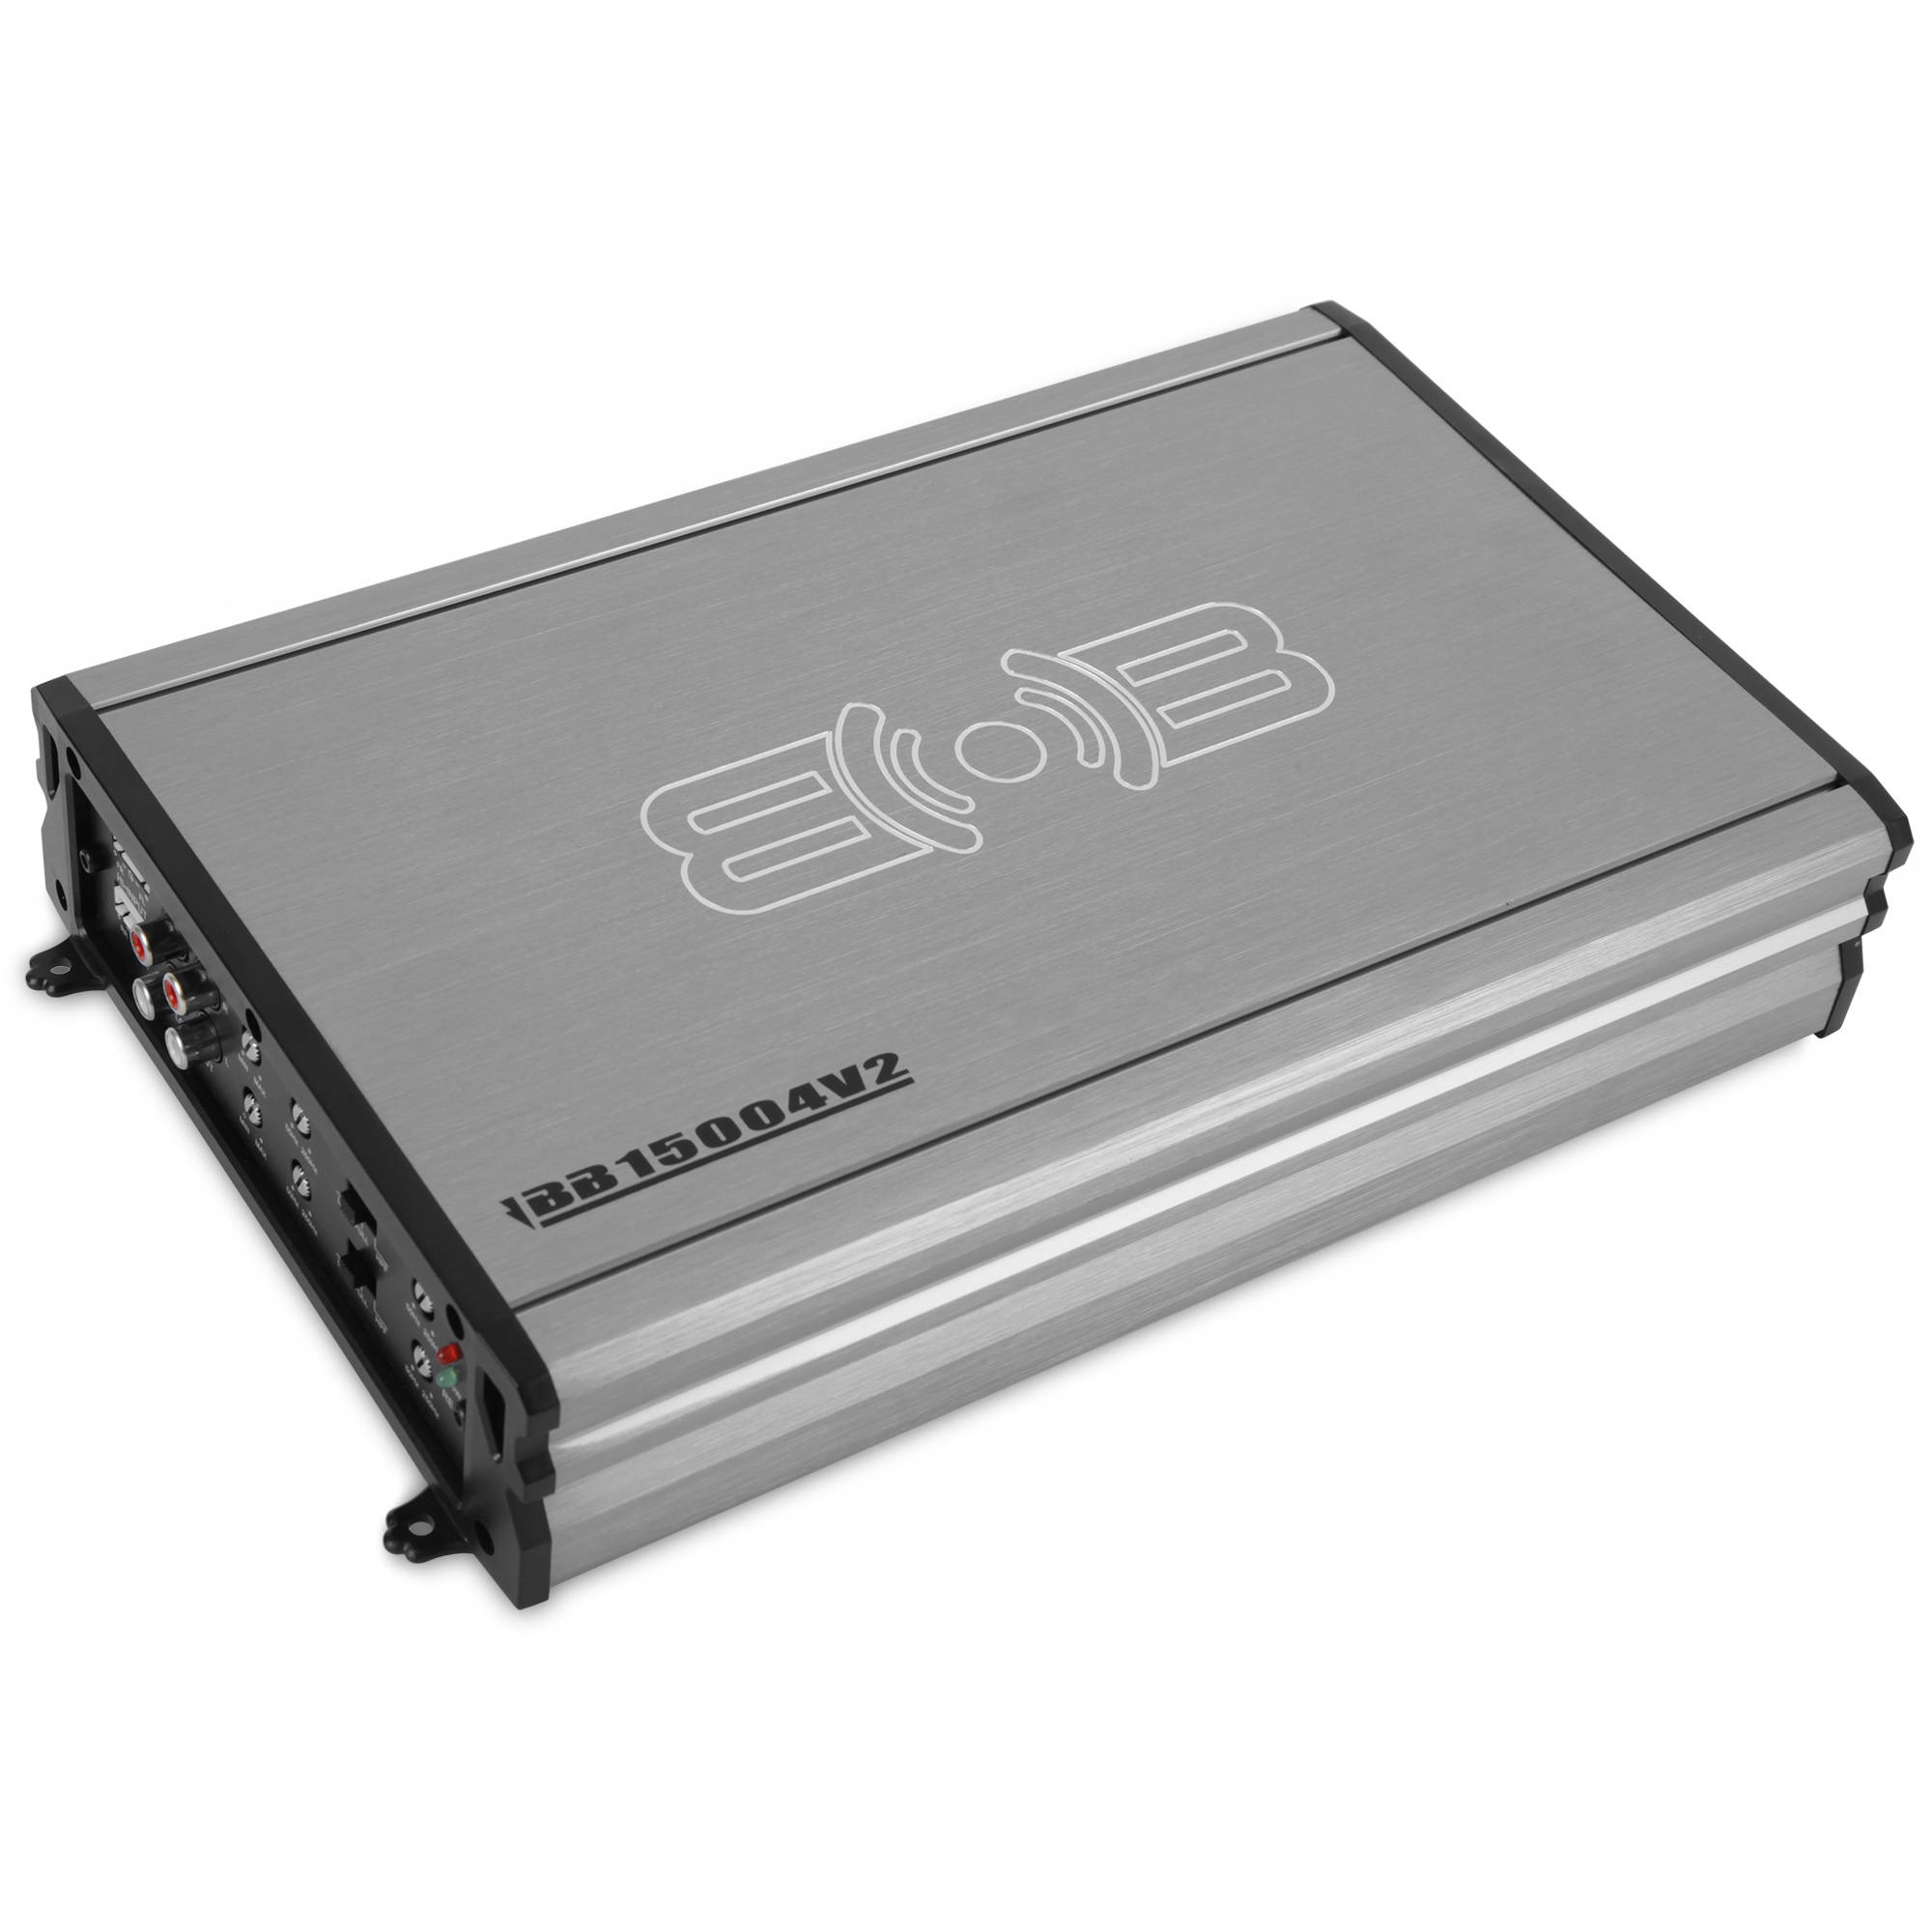 Belva BB15004v2 600-Watt RMS 1500-Watt Peak Full Range 4-Channel Amplifier